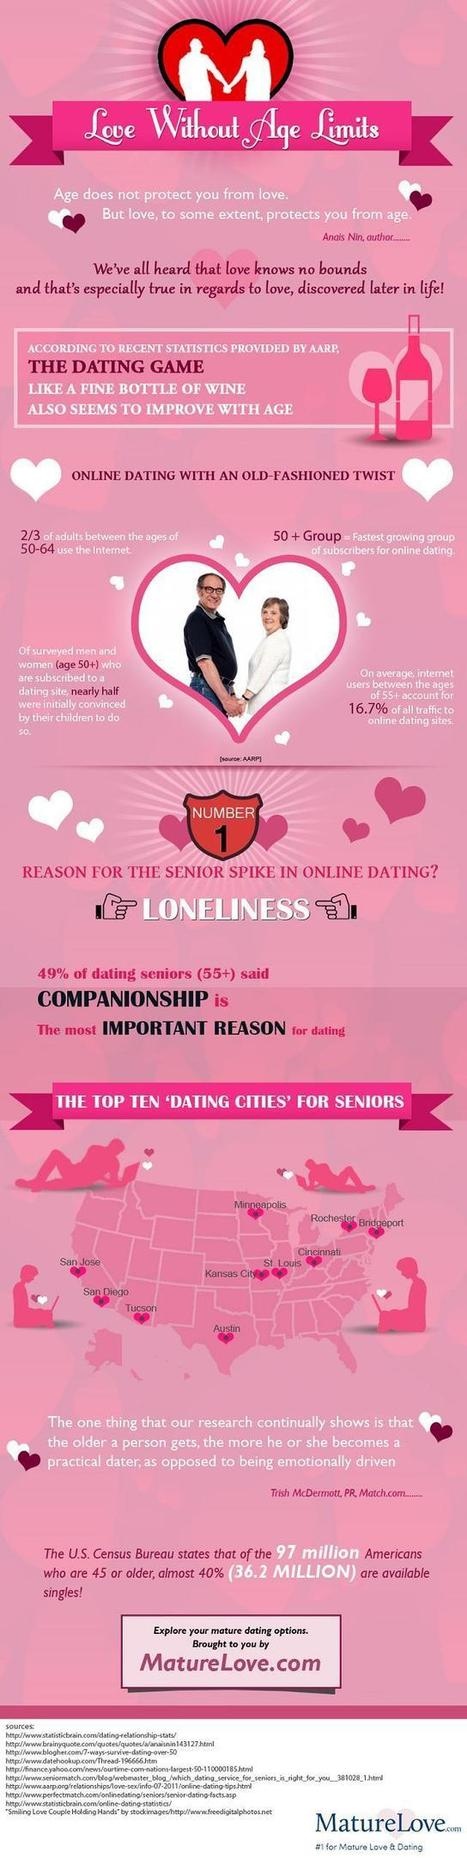 online dating and flirting tips